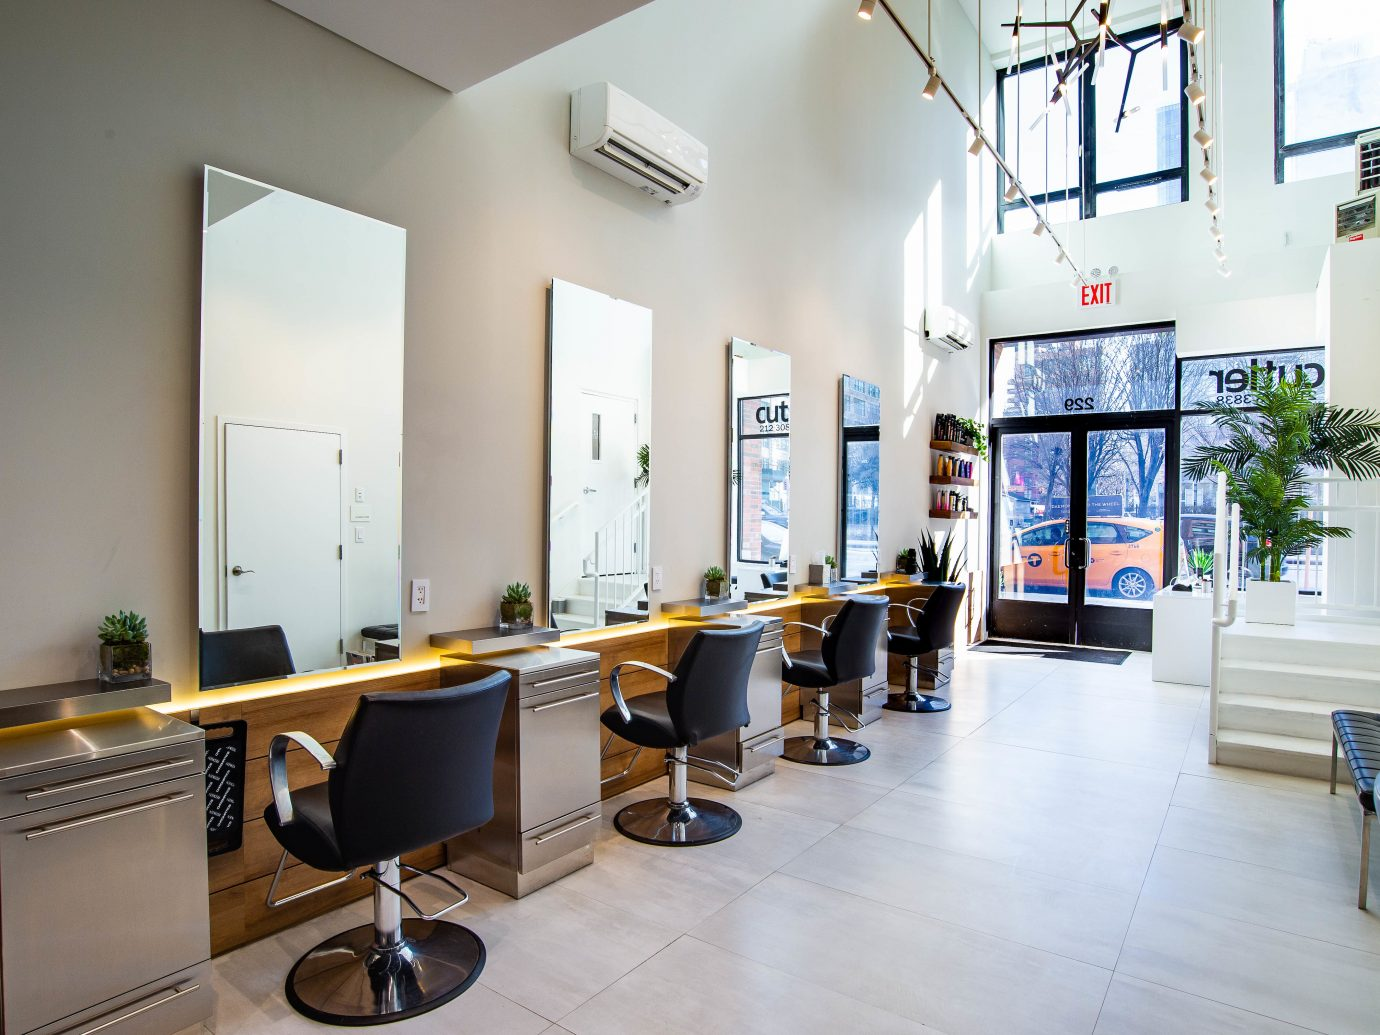 Interior of Cutler salon NYC